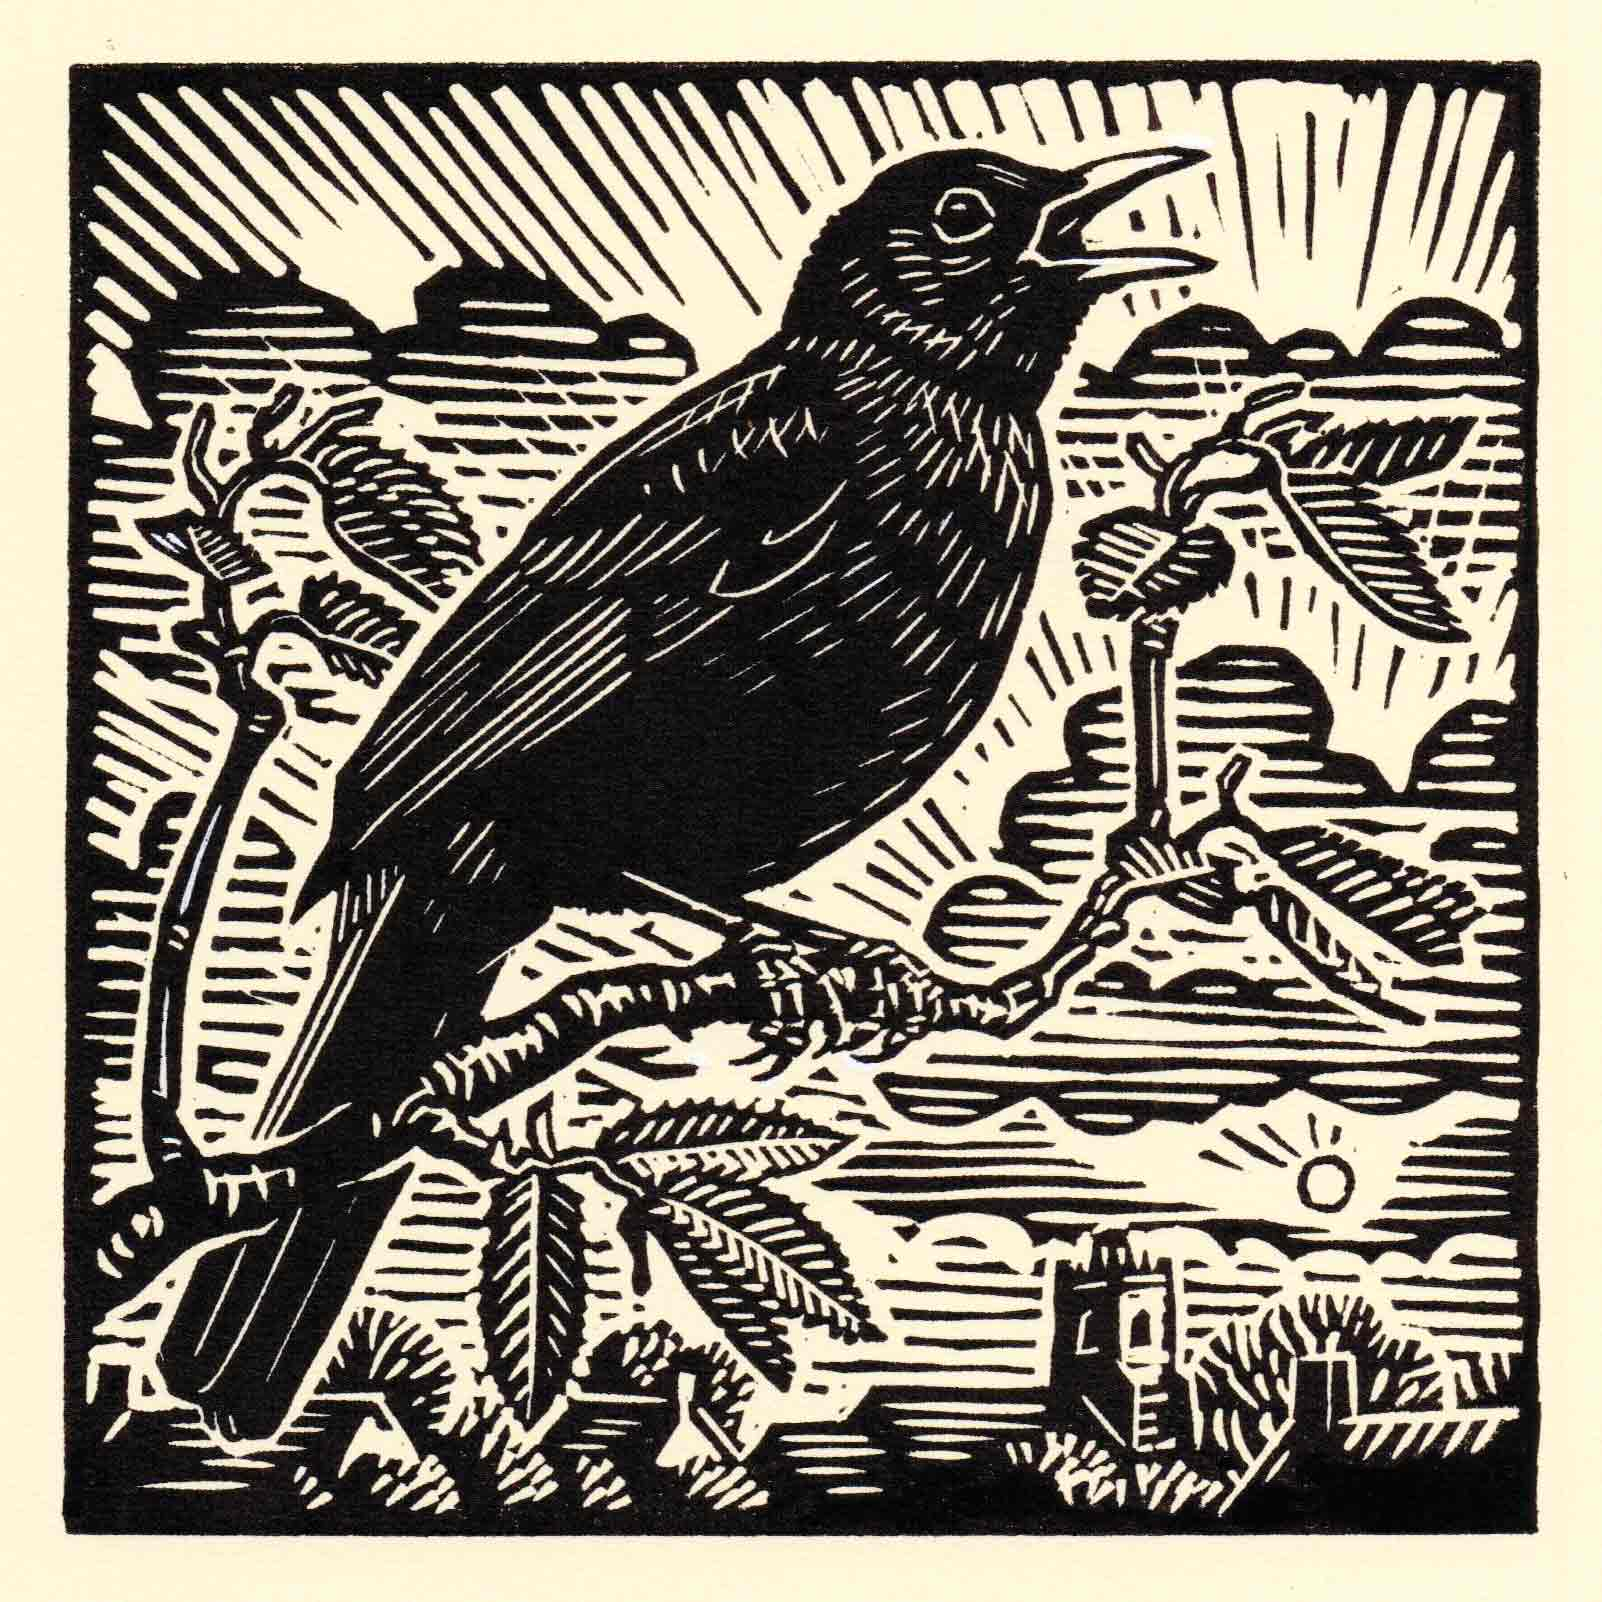 Art Greeting Card by Richard Allen, Blackbird, Linocut, Blackbird singing